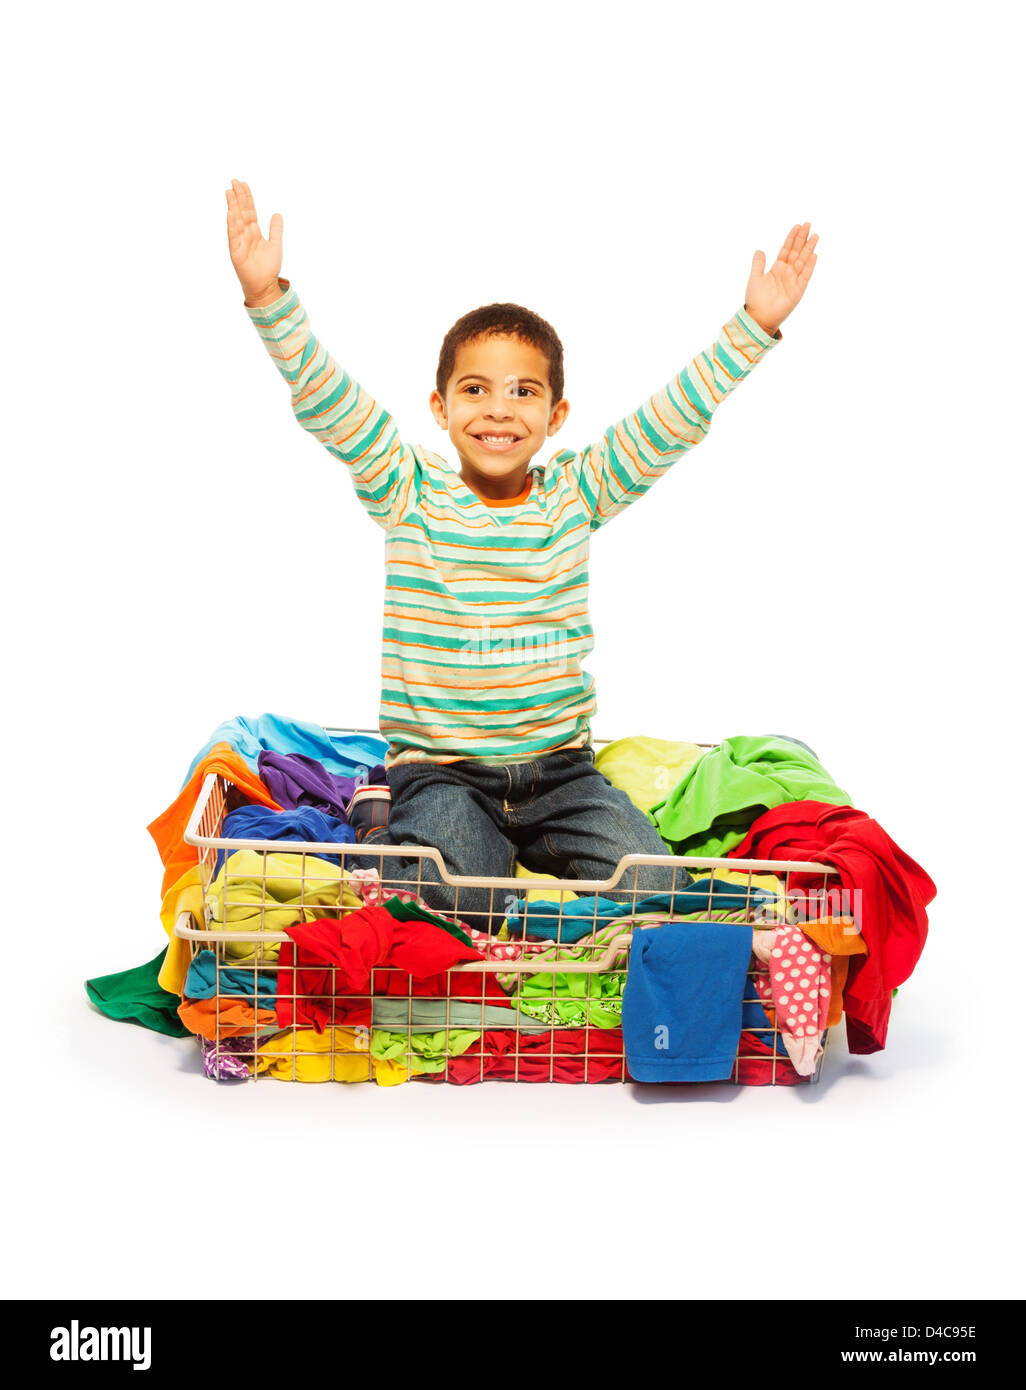 Cute five years old black boy sitting in basket with fashion clothes and his hands lifted, isolated on white - Stock Image